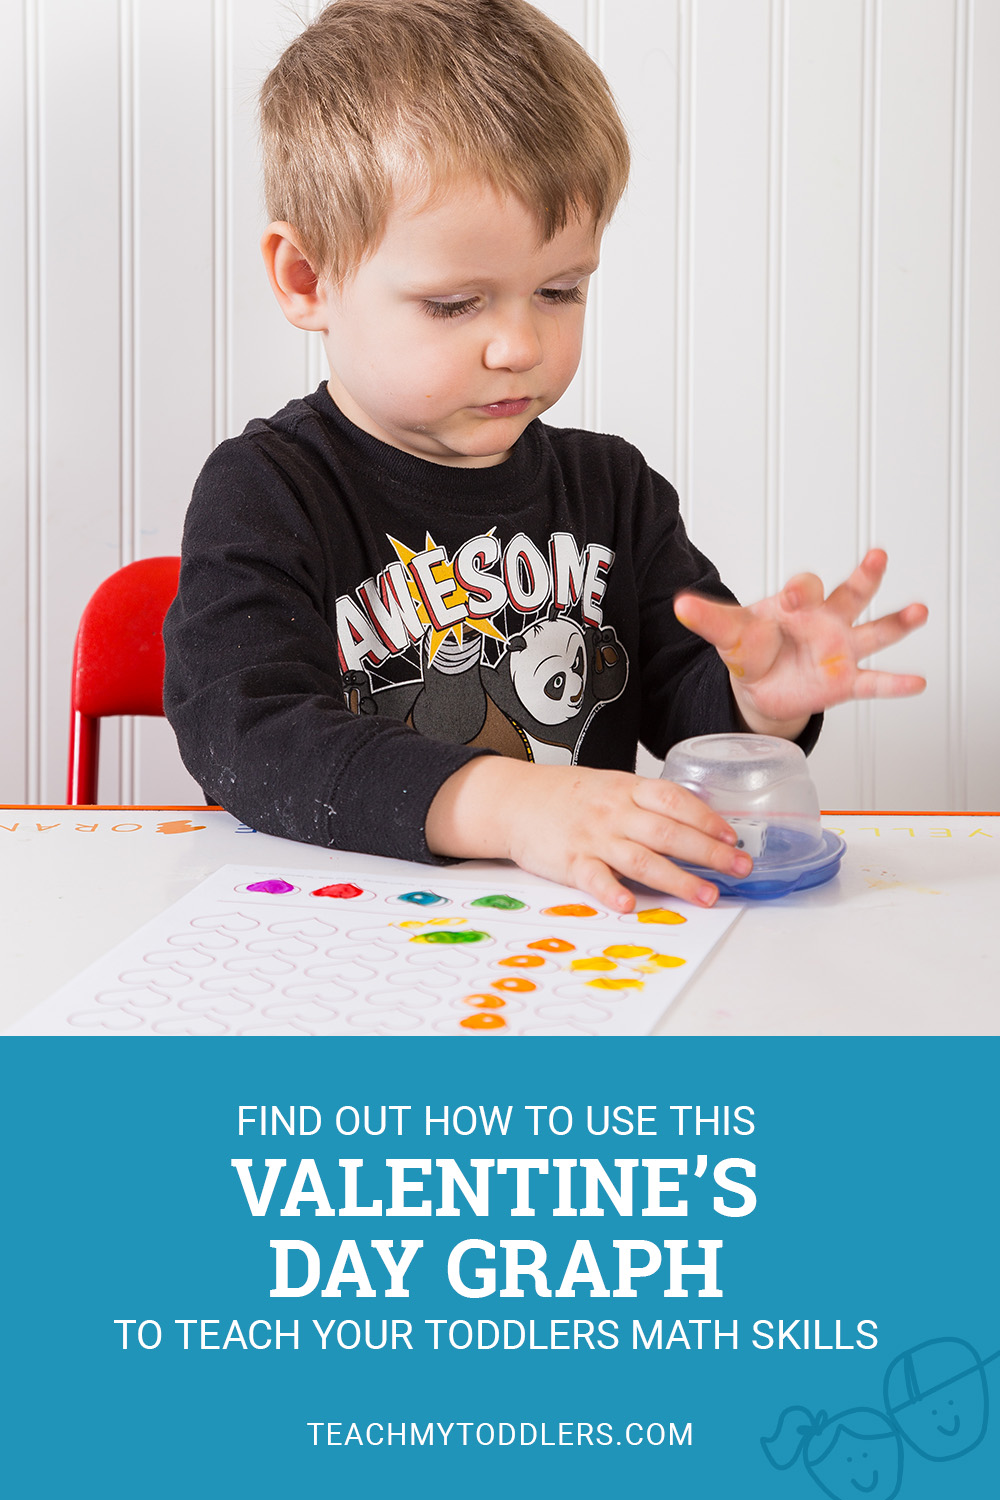 Find out how to use this valentine's day graph to teach your toddlers math skills